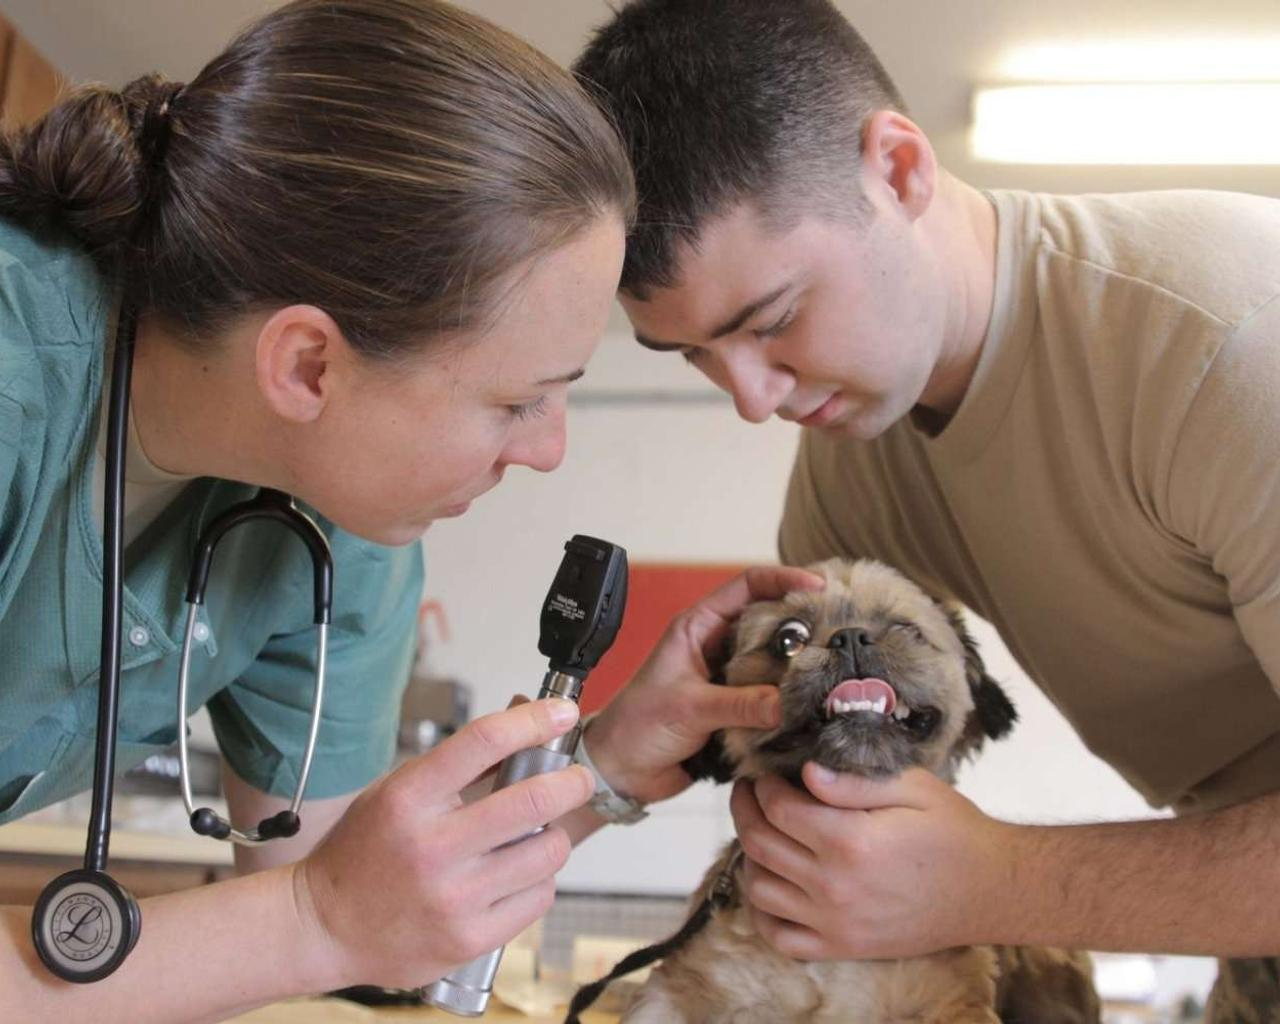 Veterinarians Becoming More Cautious In Face Of Growing Opioid Crisis—Is This What It Is Coming To?